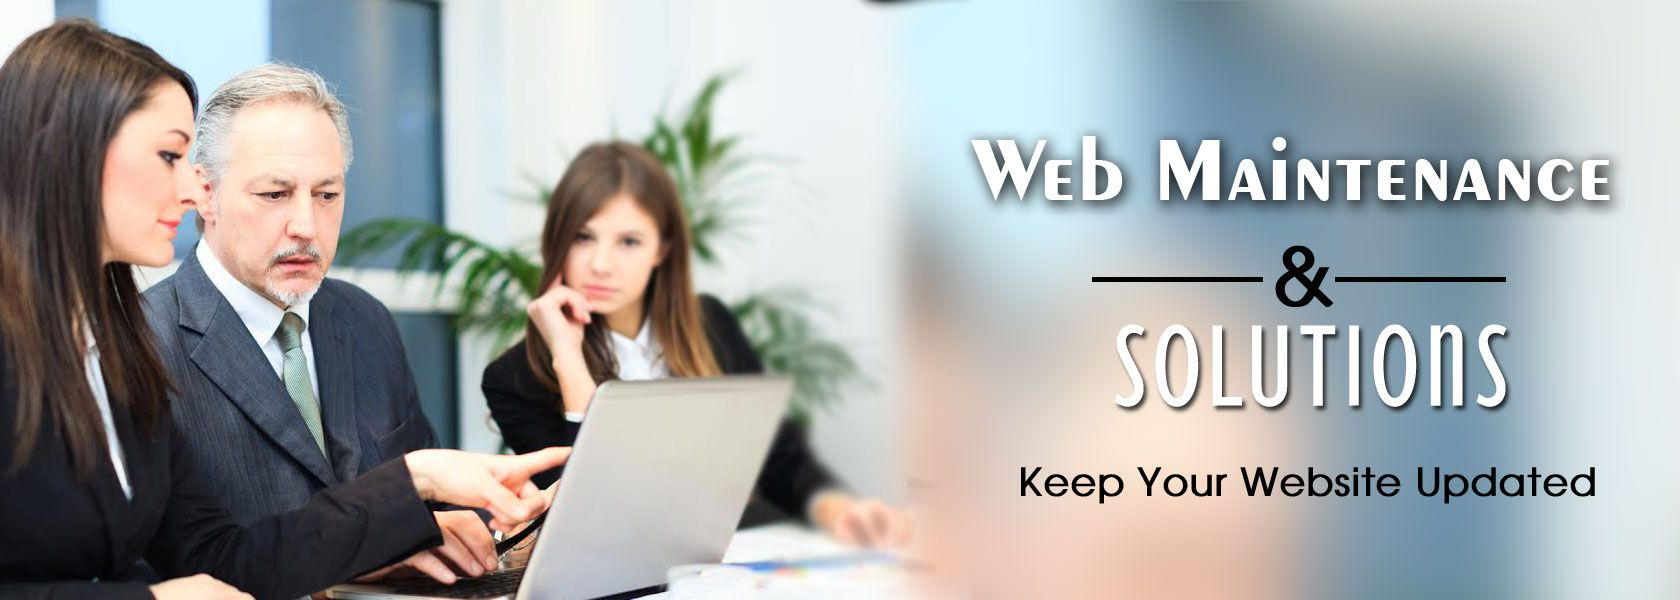 web maintenance services